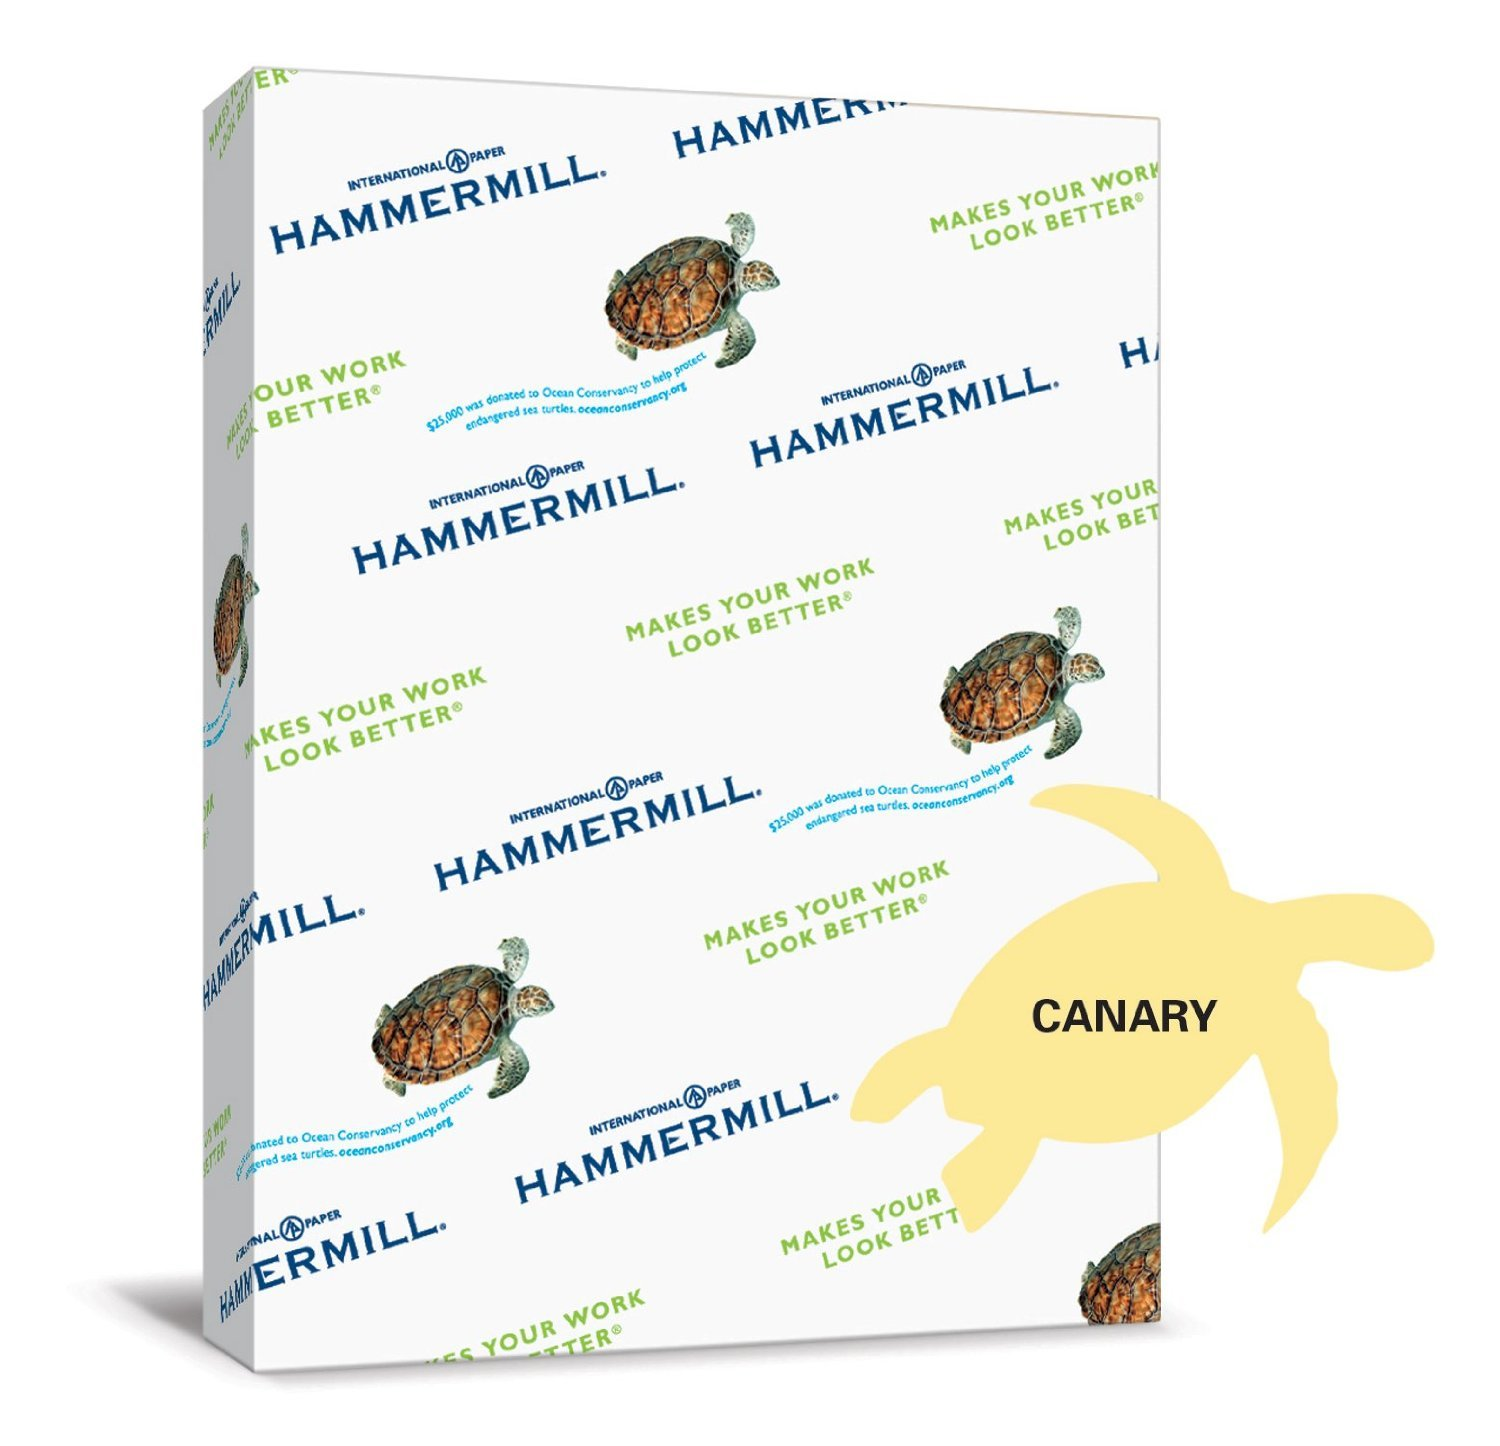 Hammermill Paper Colors pLGSf Canary, 24lb., 8.5x11, Letter 500 Sheets (6 Pack) twsbx by HammtrmKll (Image #1)